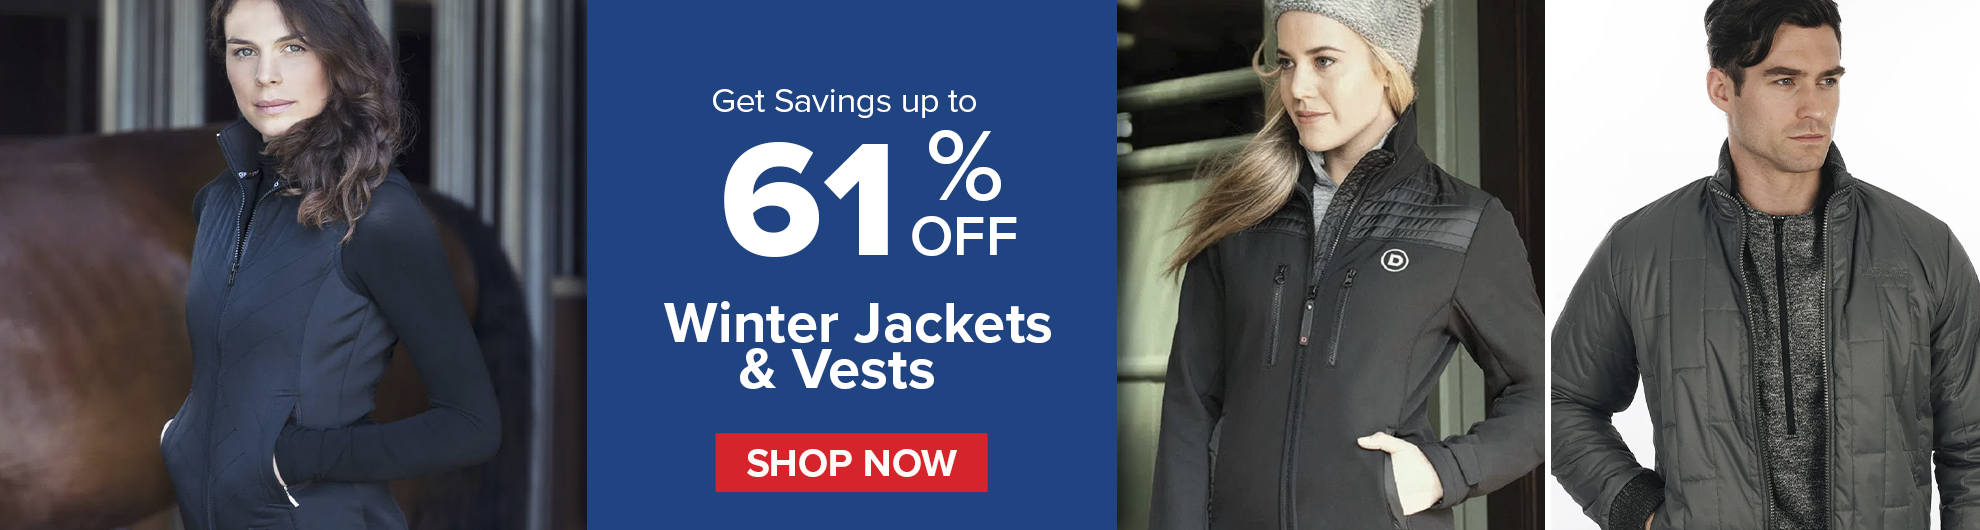 Winter Jackets and Vests